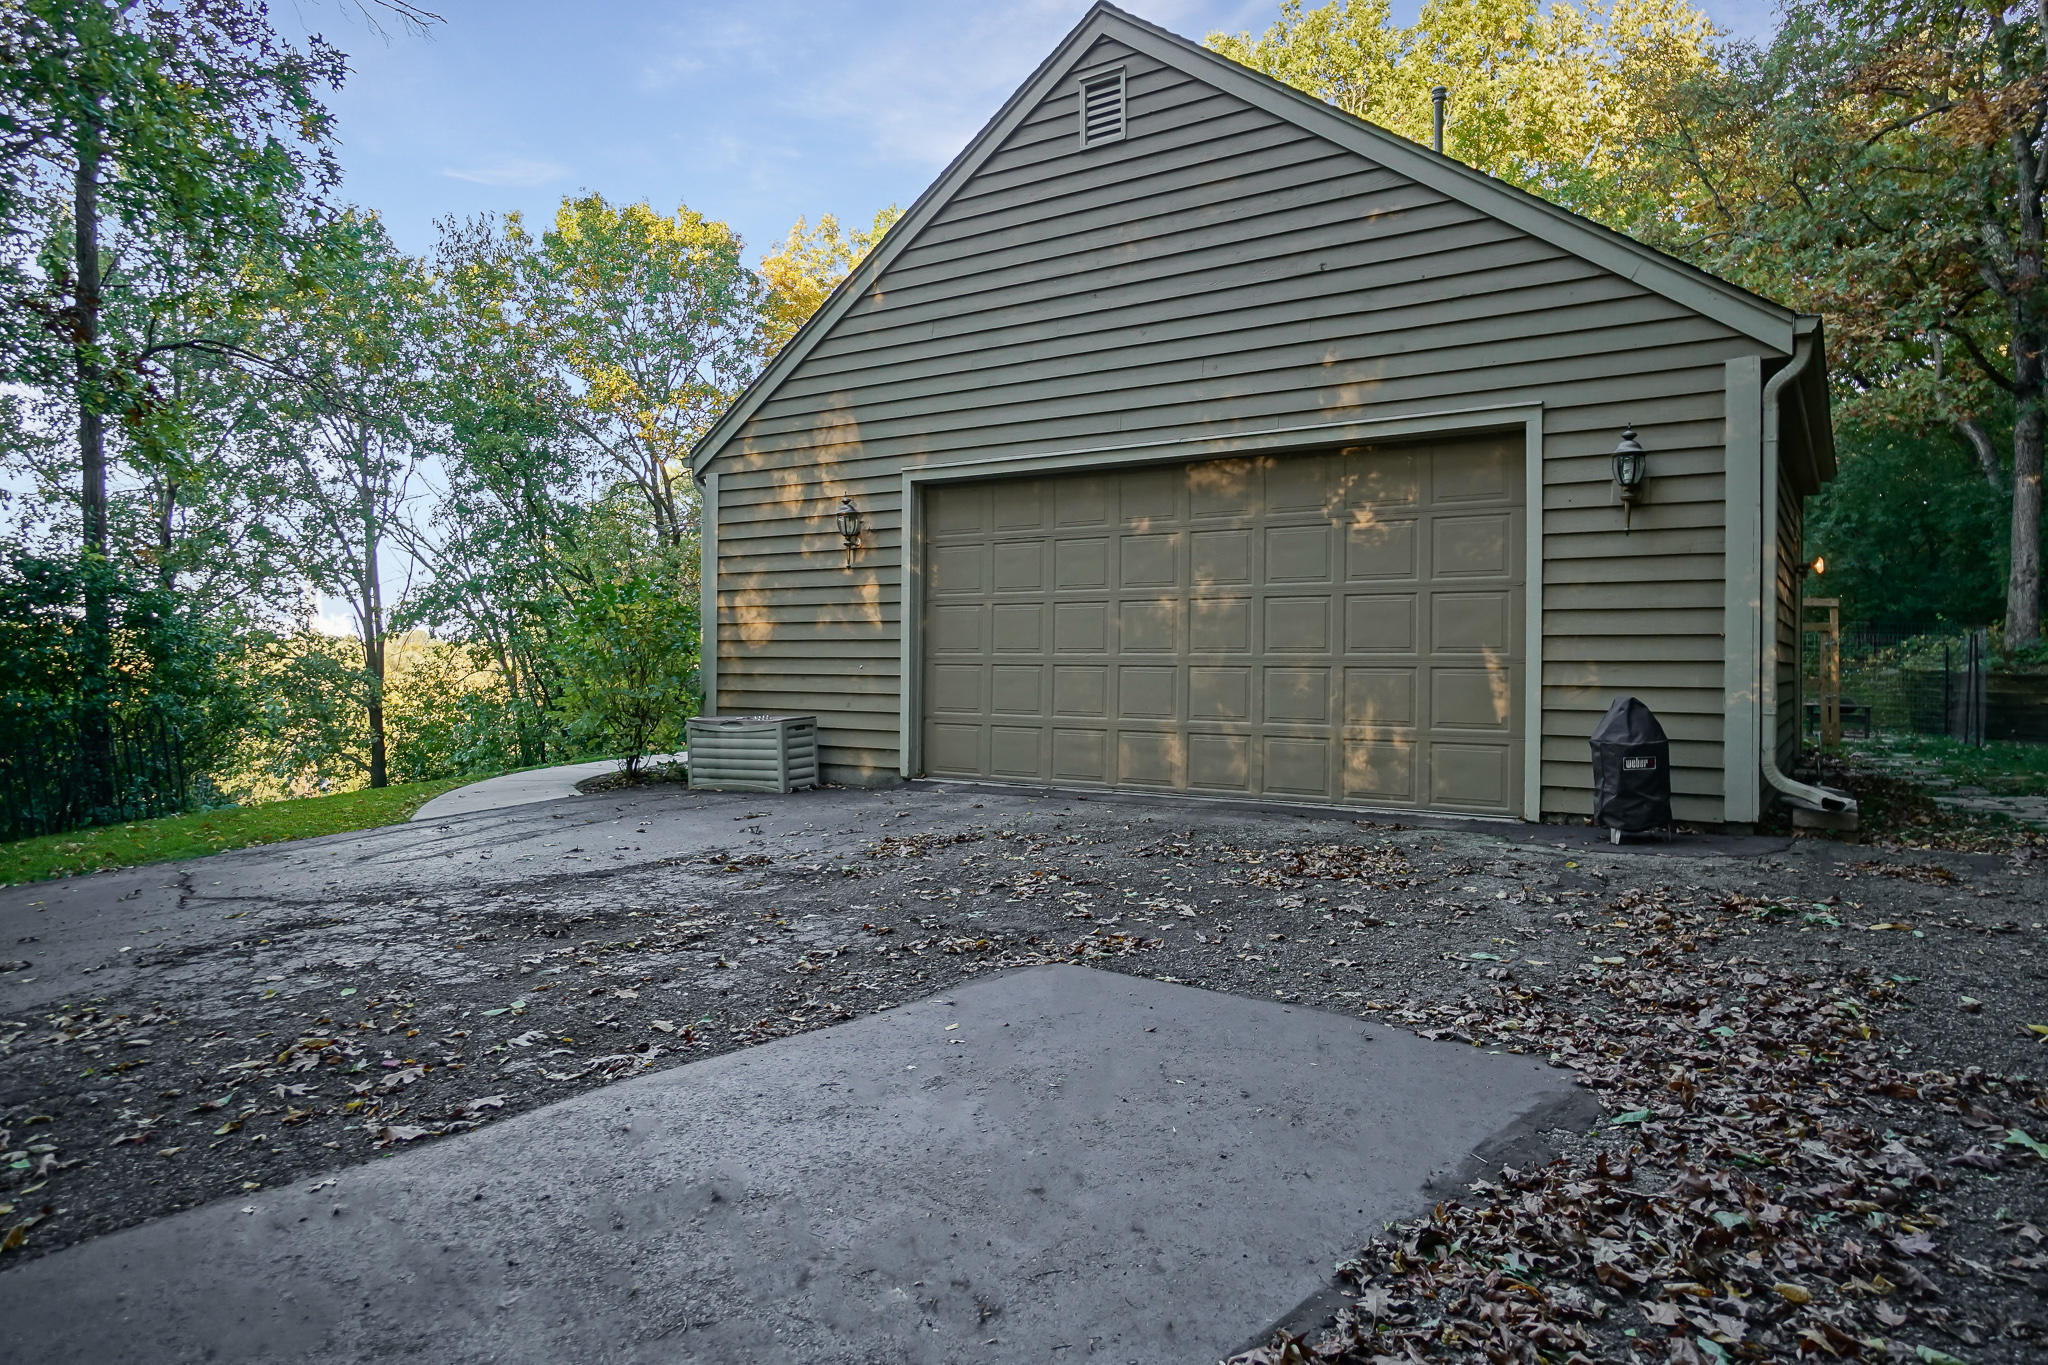 S69W32641 Westgate Dr, Mukwonago, Wisconsin 53149, 3 Bedrooms Bedrooms, ,2 BathroomsBathrooms,Single-family,For Sale,Westgate Dr,1714075